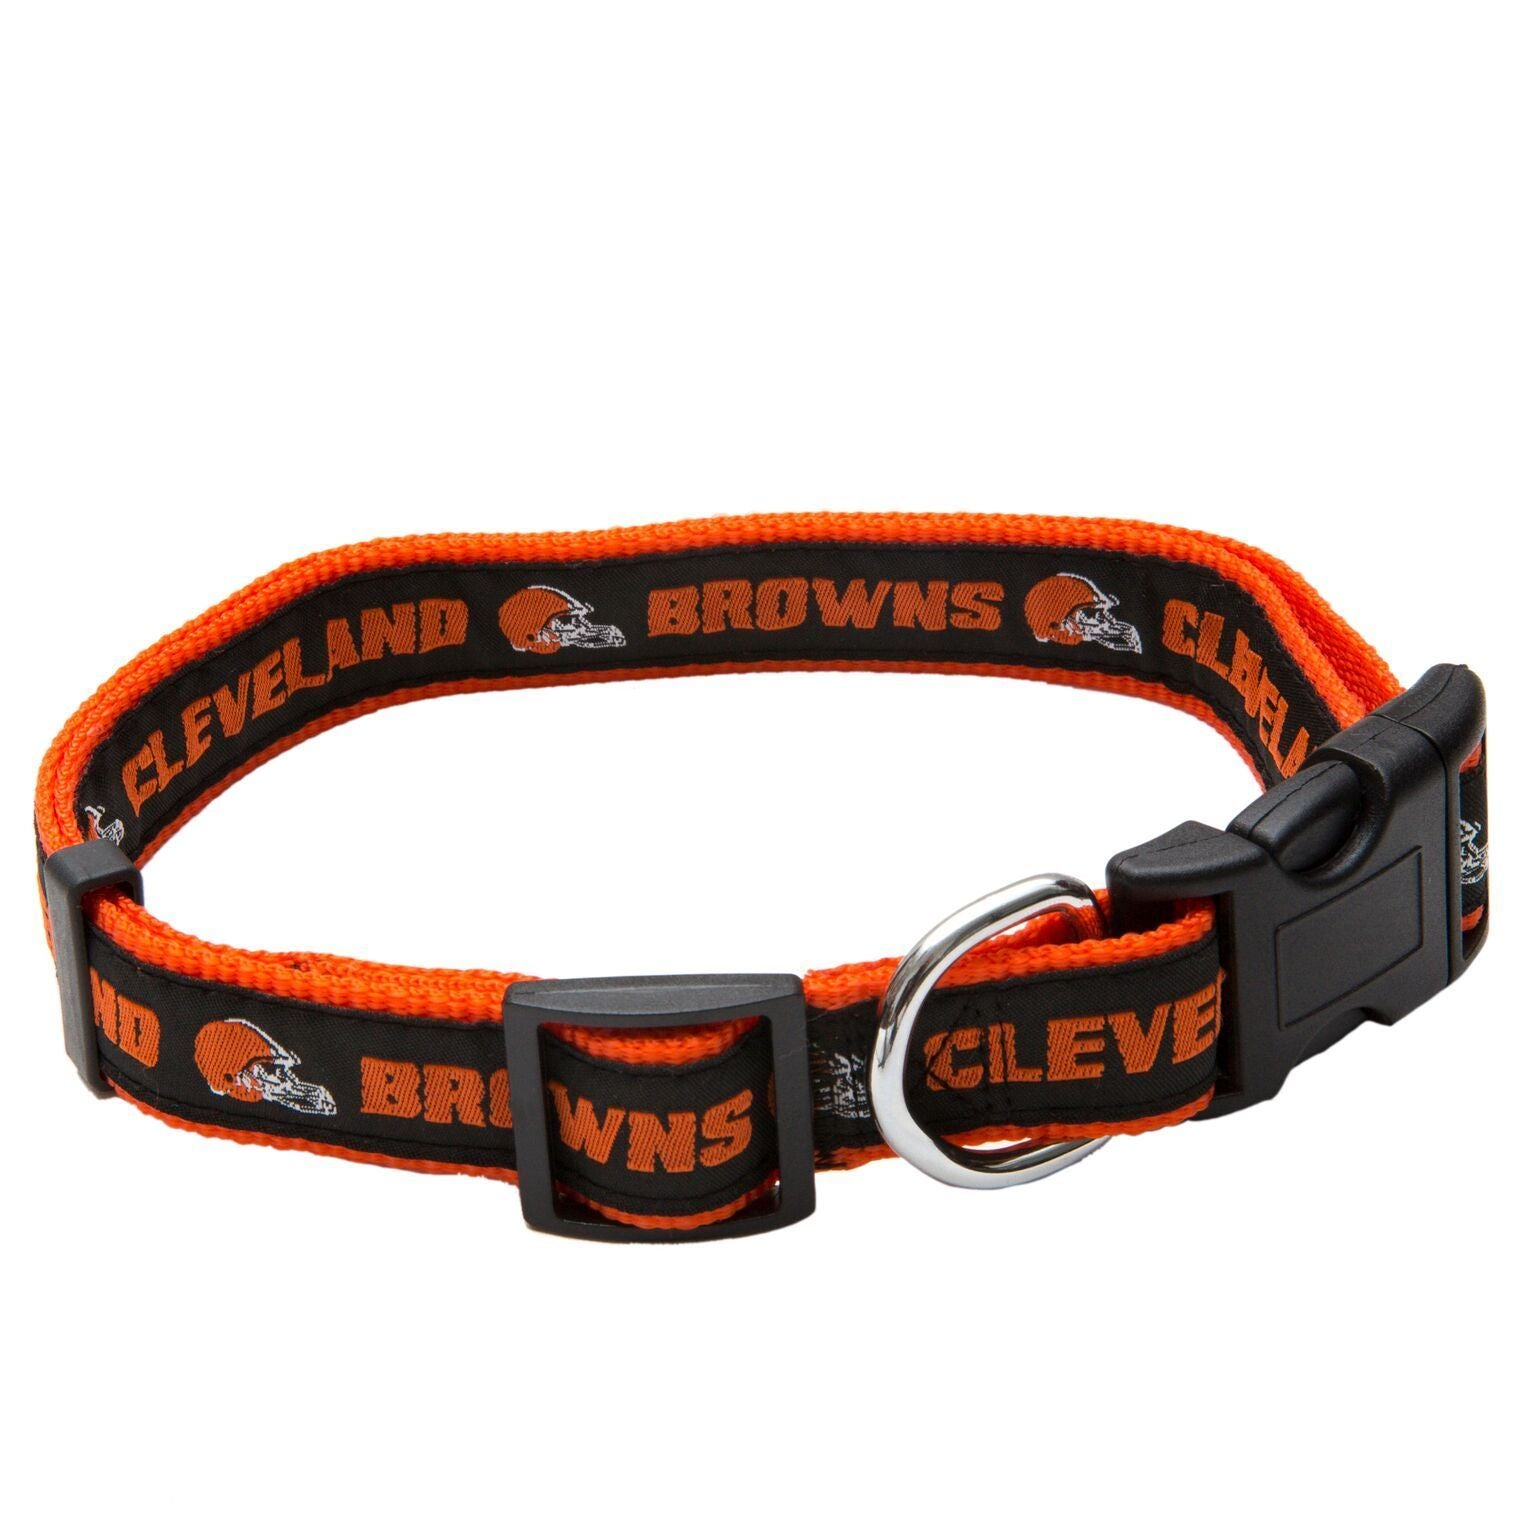 Cleveland Browns Puppy Dog Football Jersey Cheerleading Uniform Collar Leash - Jersey Champs